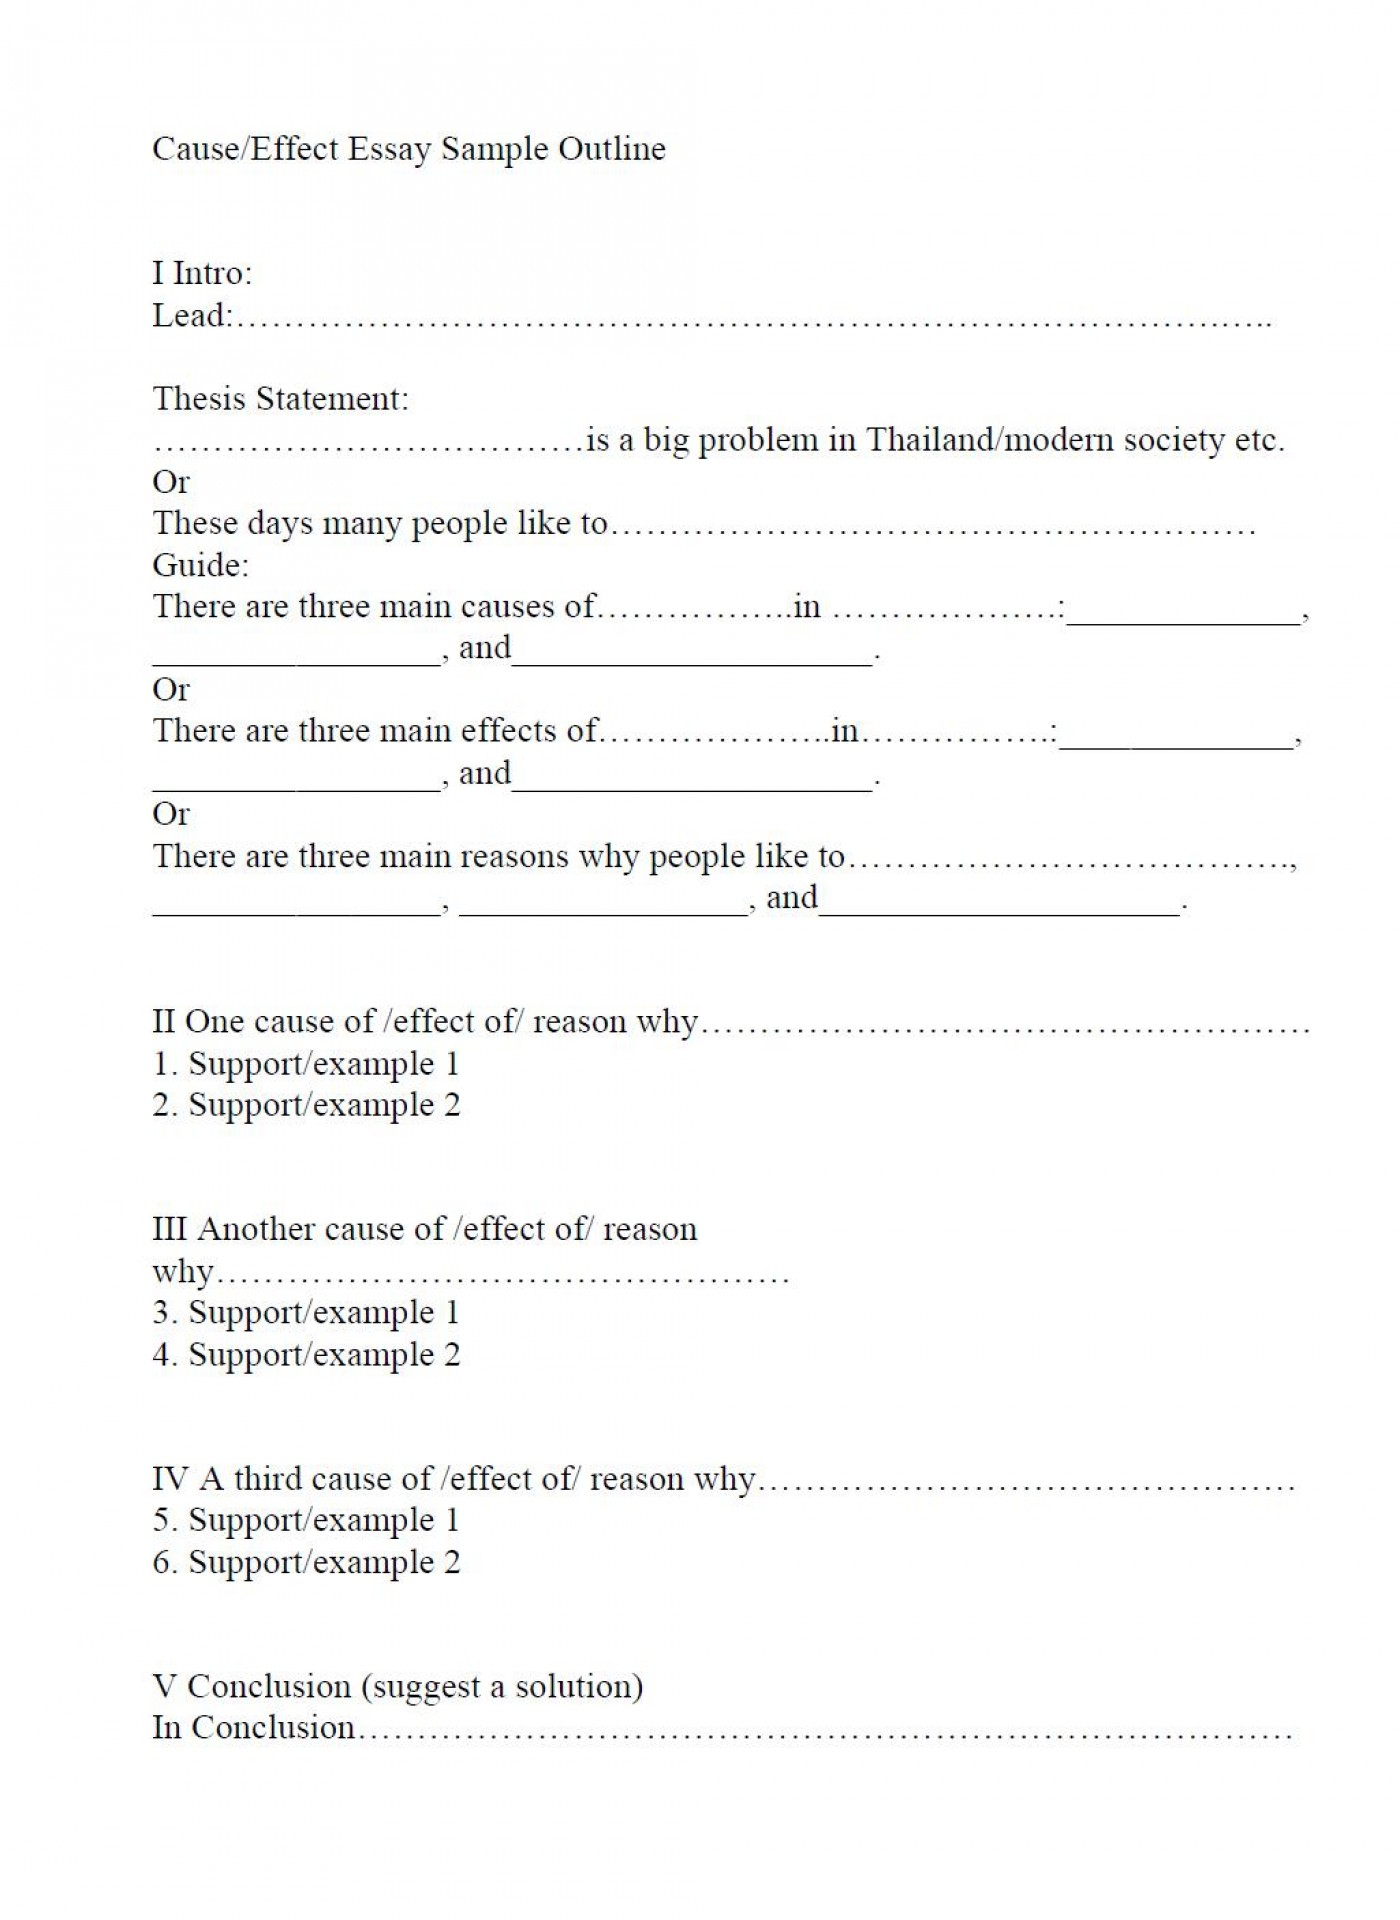 019 Essay Example Outline For Cause Effect Marvelous Worksheet Format Research Paper Introduction 1400